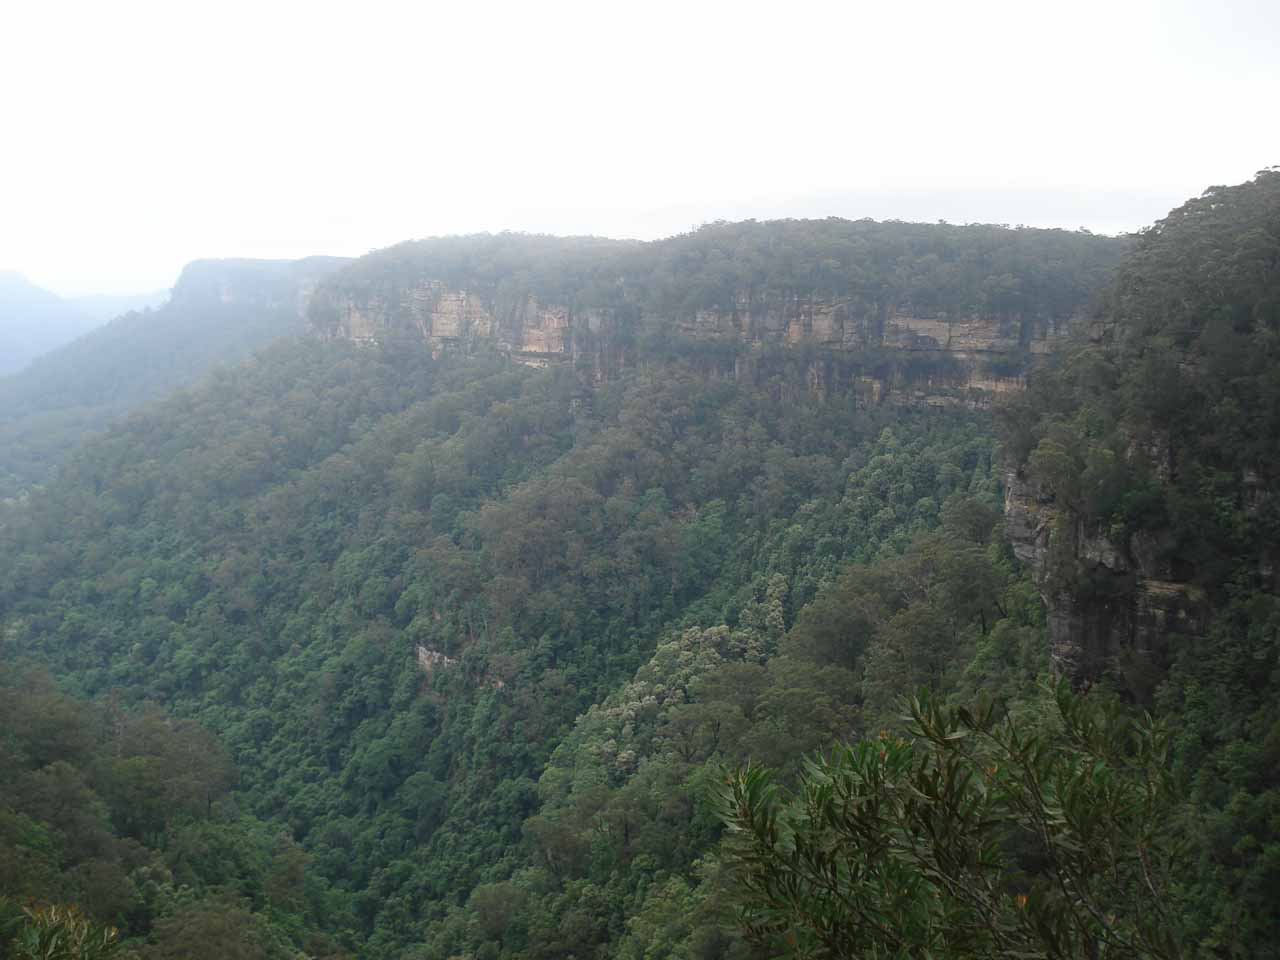 Examining the cliffs on the opposite side of the valley as we were walking towards the more distant views of Fitzroy Falls